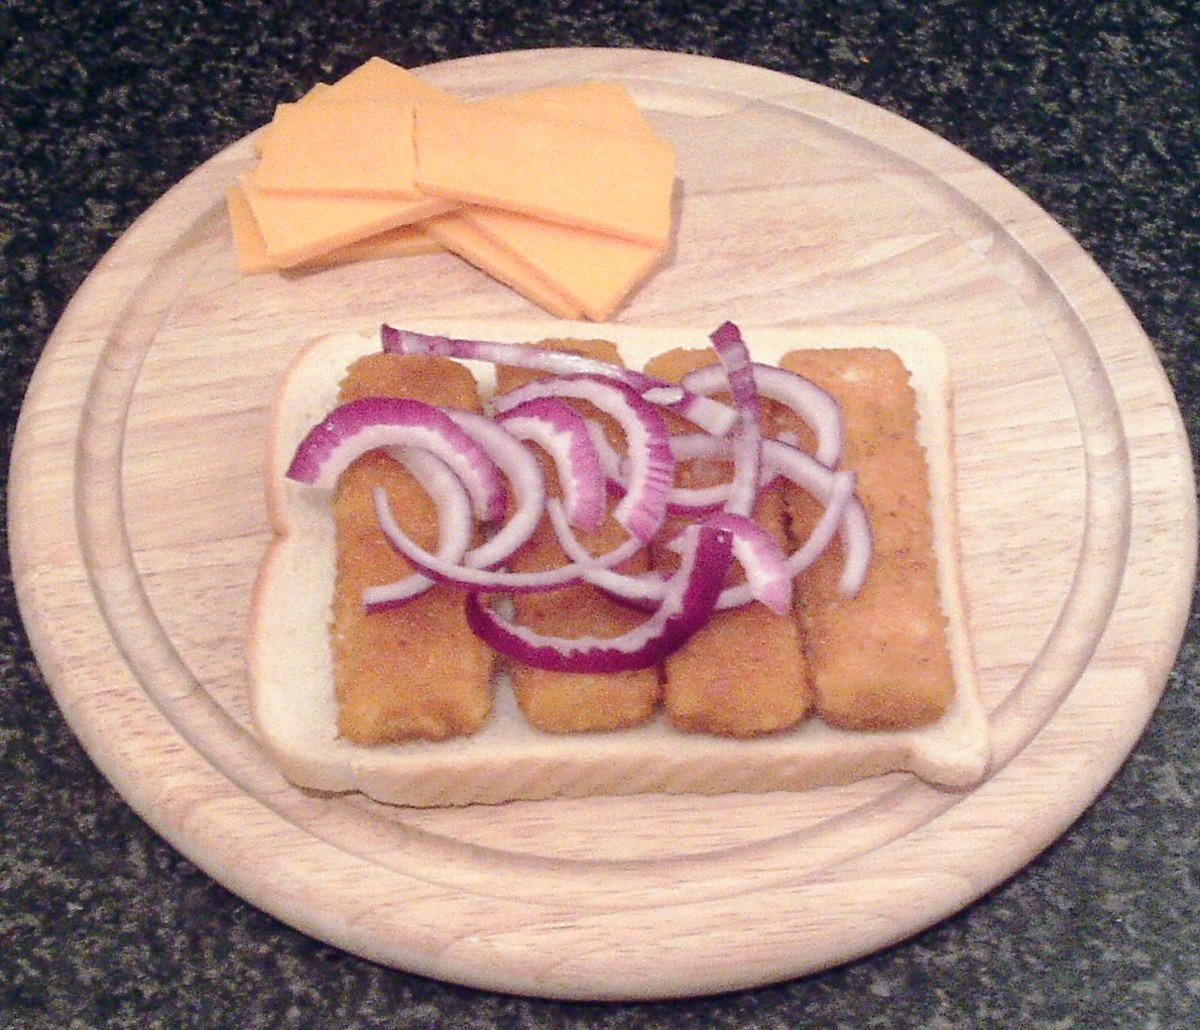 Onion strands are arranged on fish fingers on bread